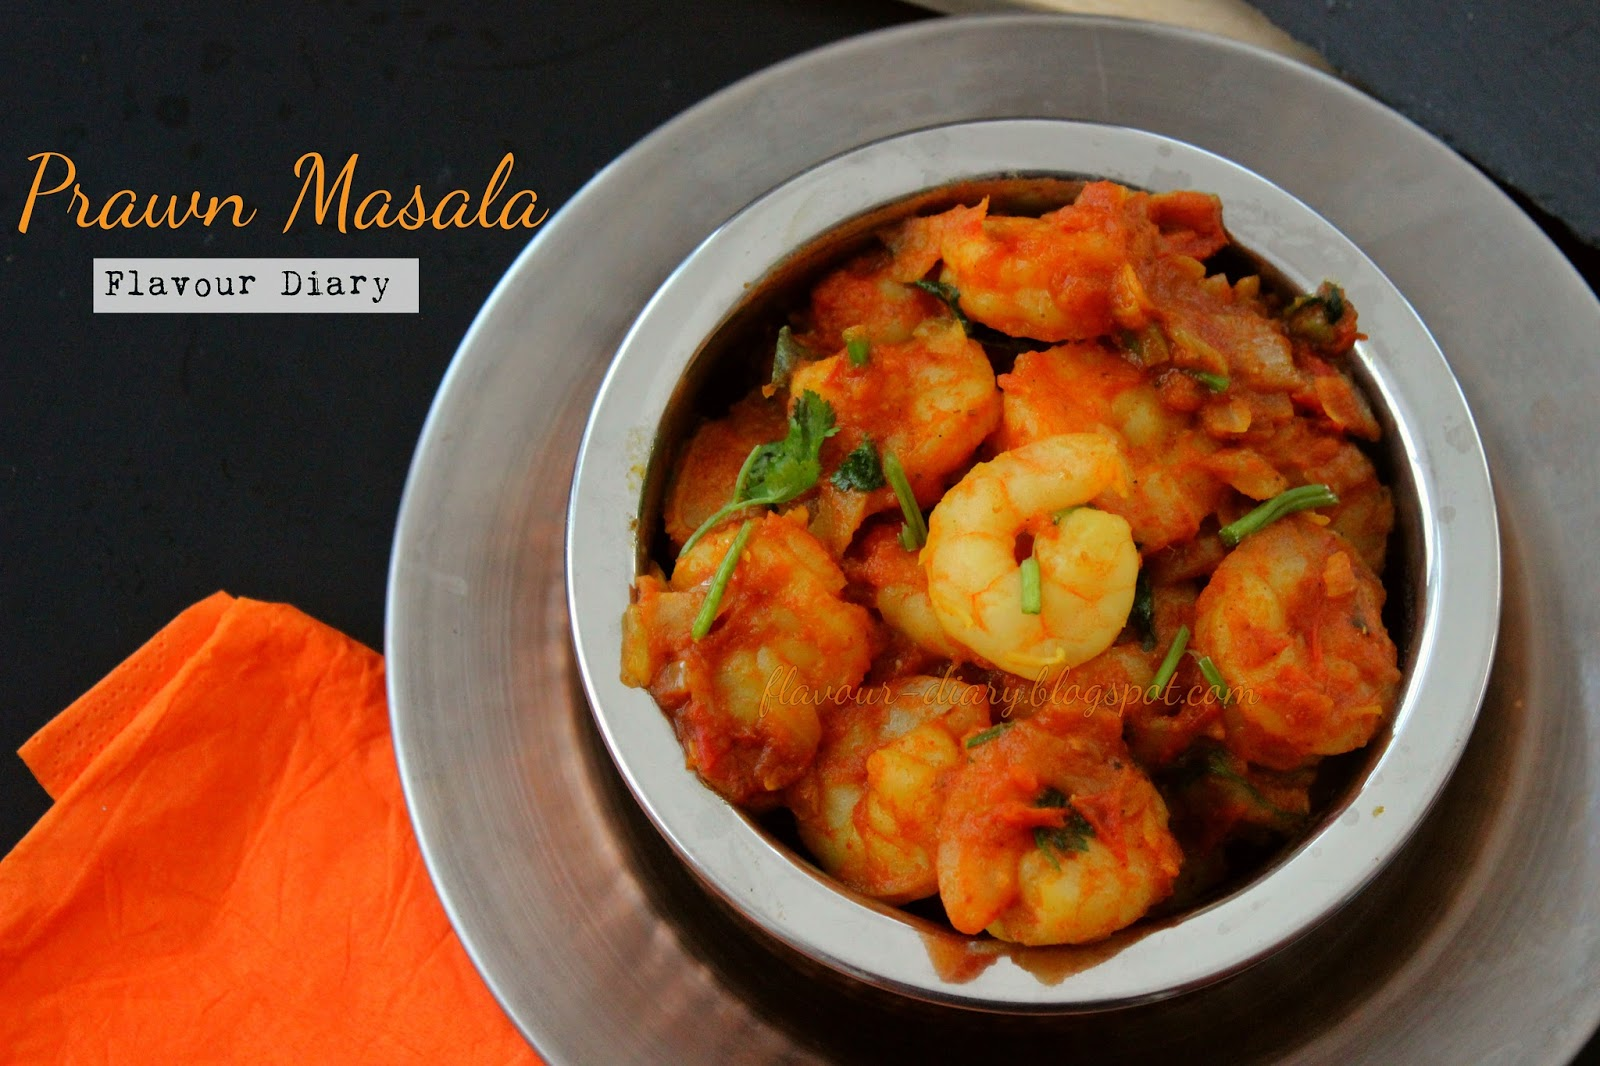 Indian food recipes indian recipes desi food desi recipes prawn masala curry recipe non veg curry forumfinder Image collections